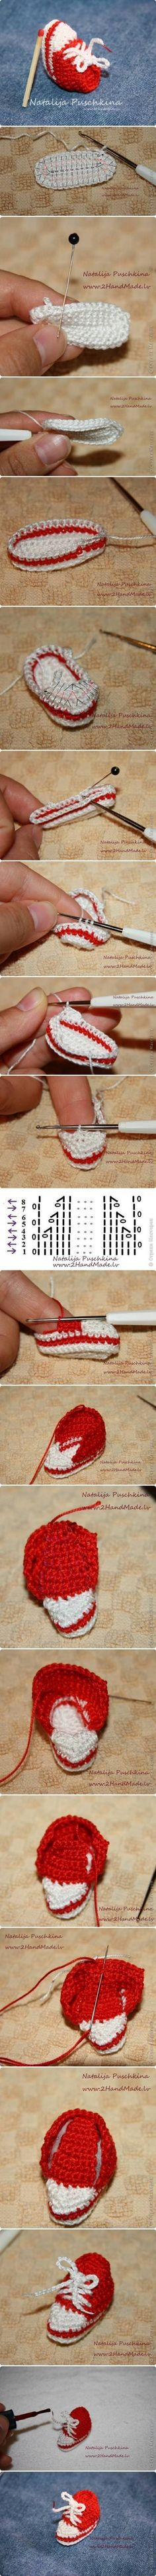 How to make Mini Crochet Sneaker step by step DIY